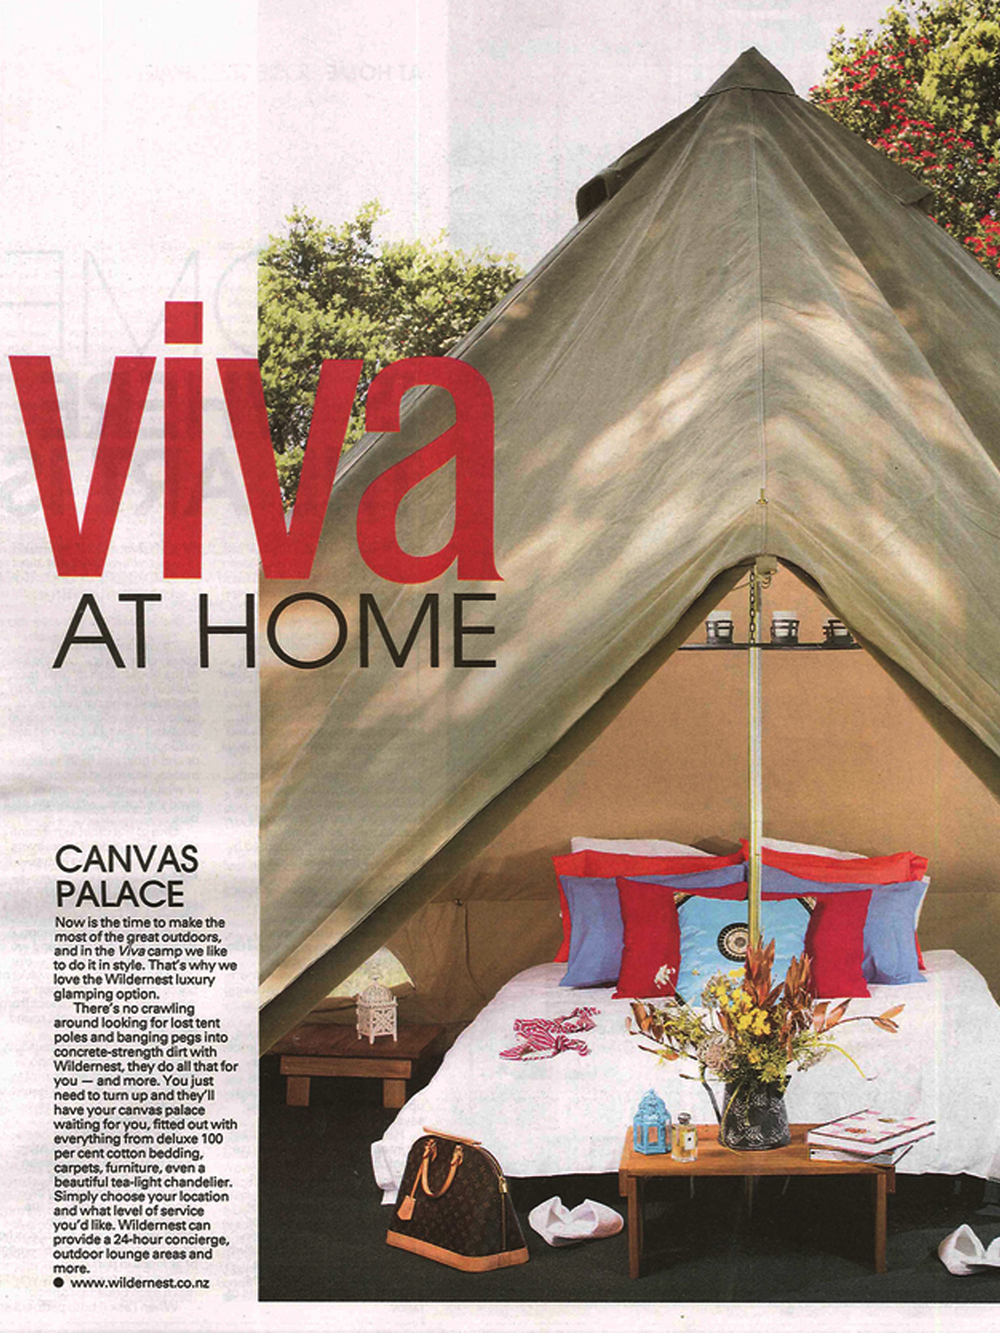 WILDERNEST IN THE VIVA MAGAZINE